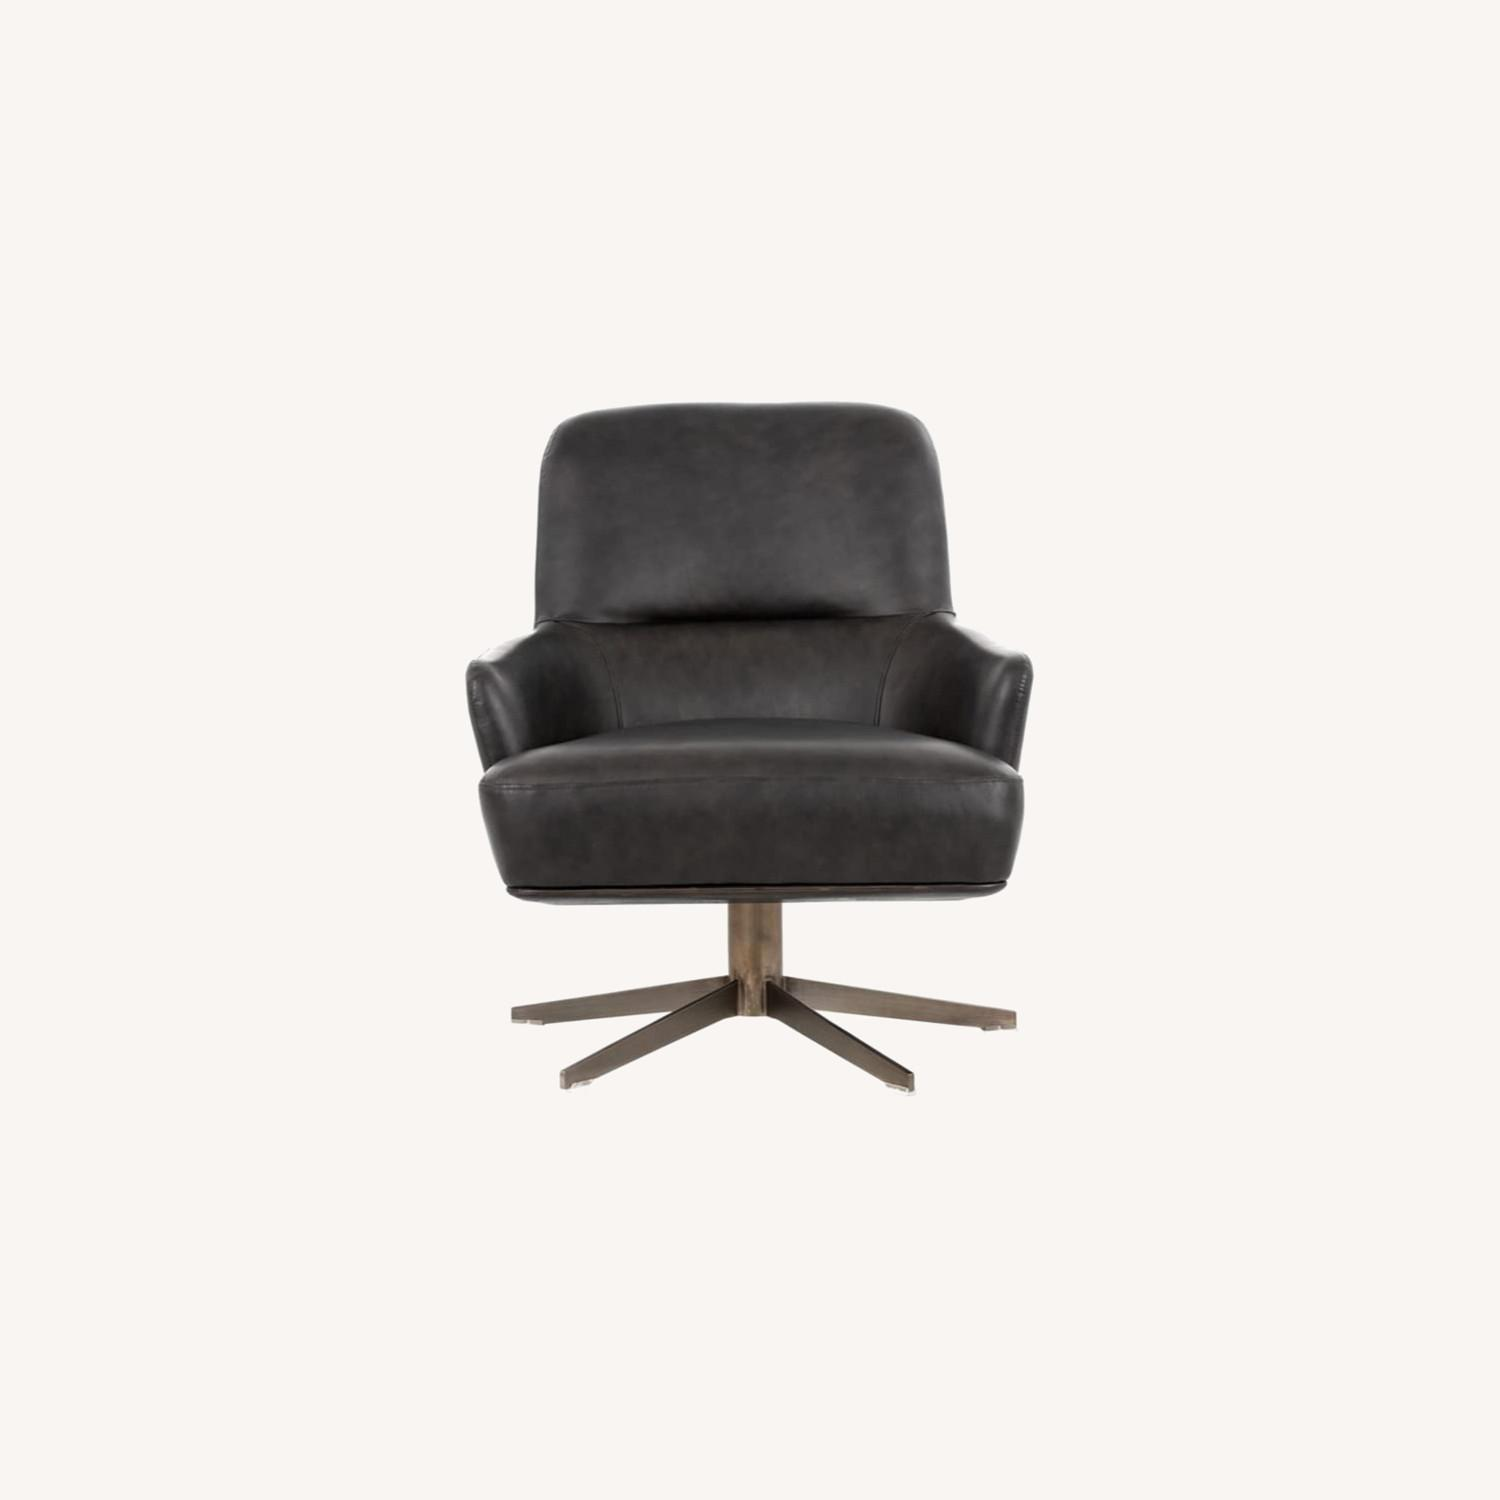 Modern Swivel Chair - Charcoal Leather - image-0